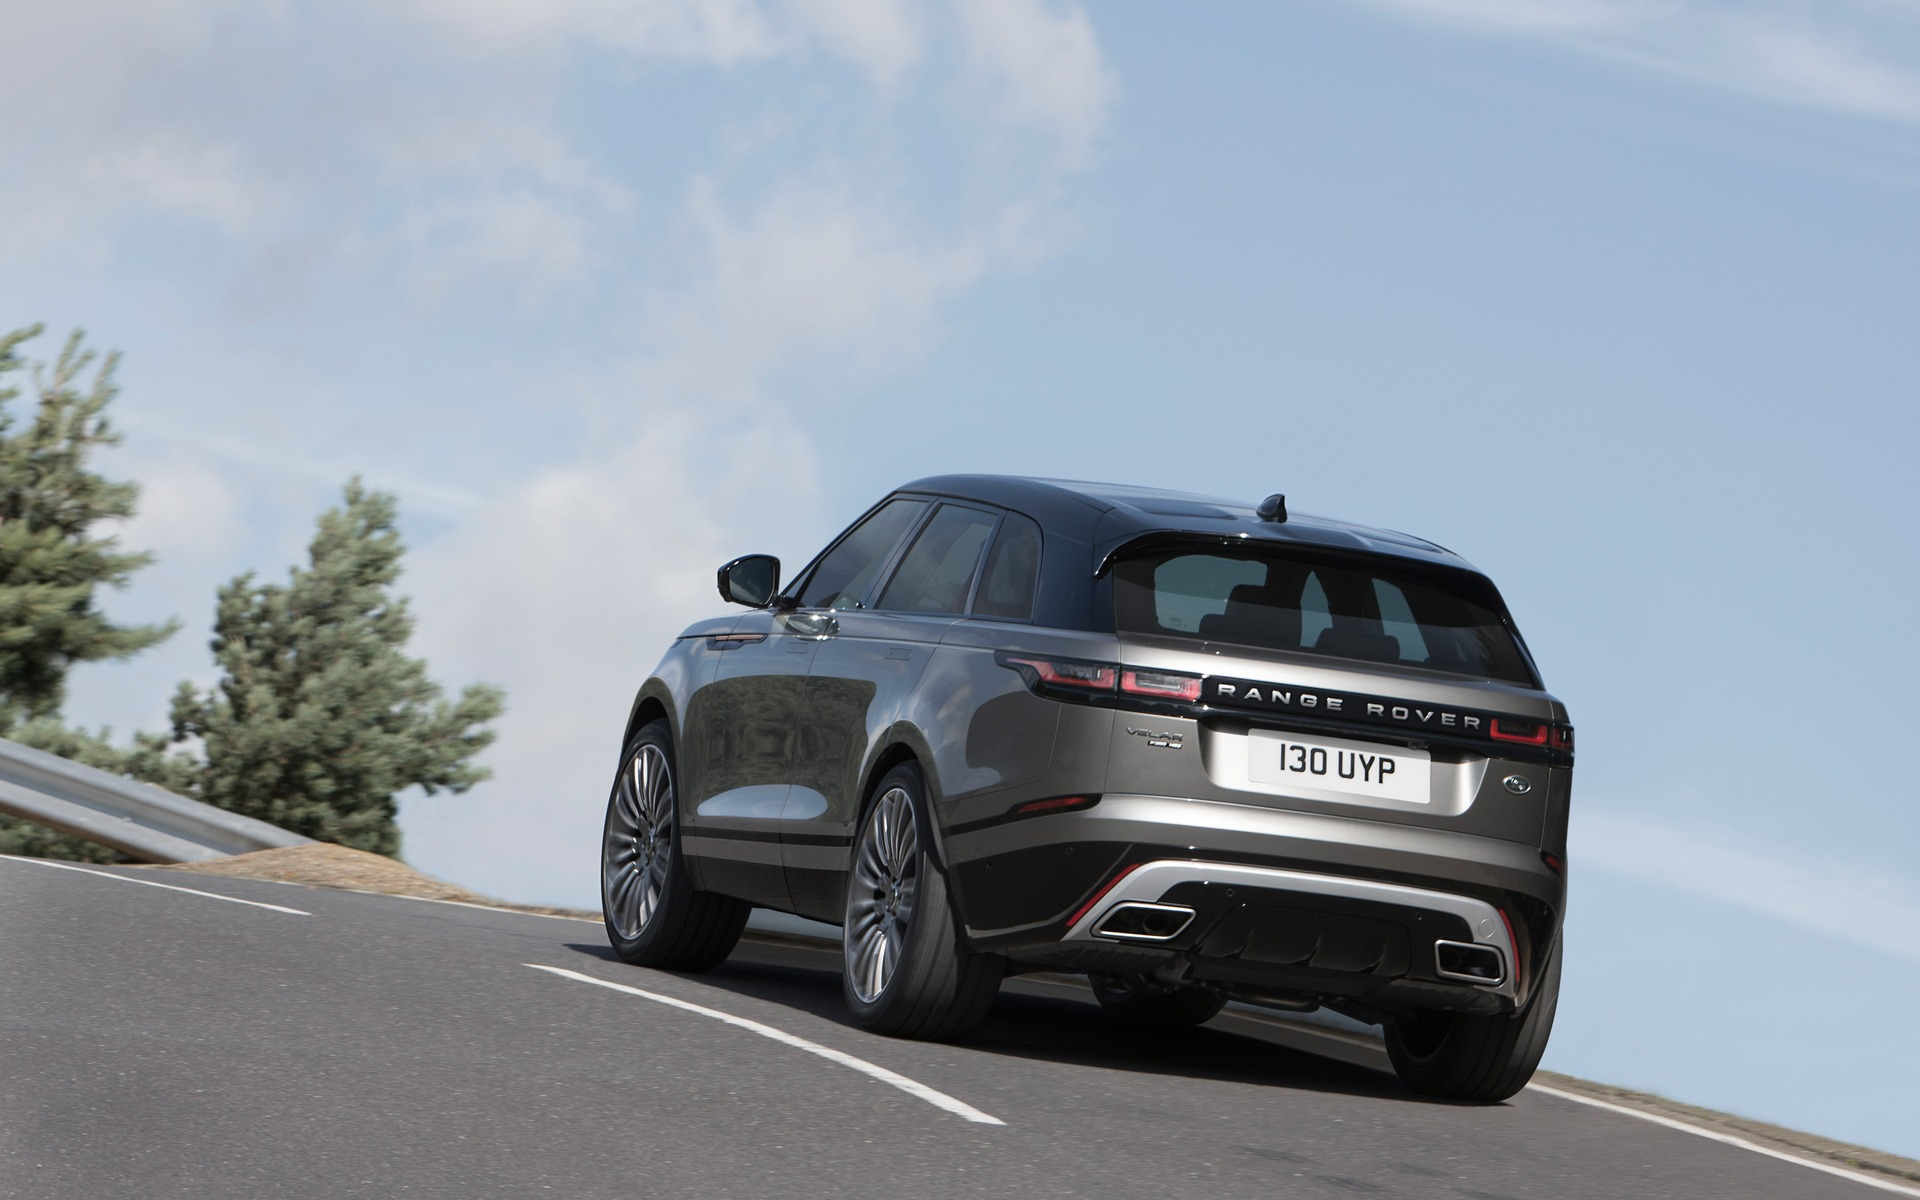 Land Rover Dealers >> 2018 Range Rover Velar: World Debut in London - 7/22